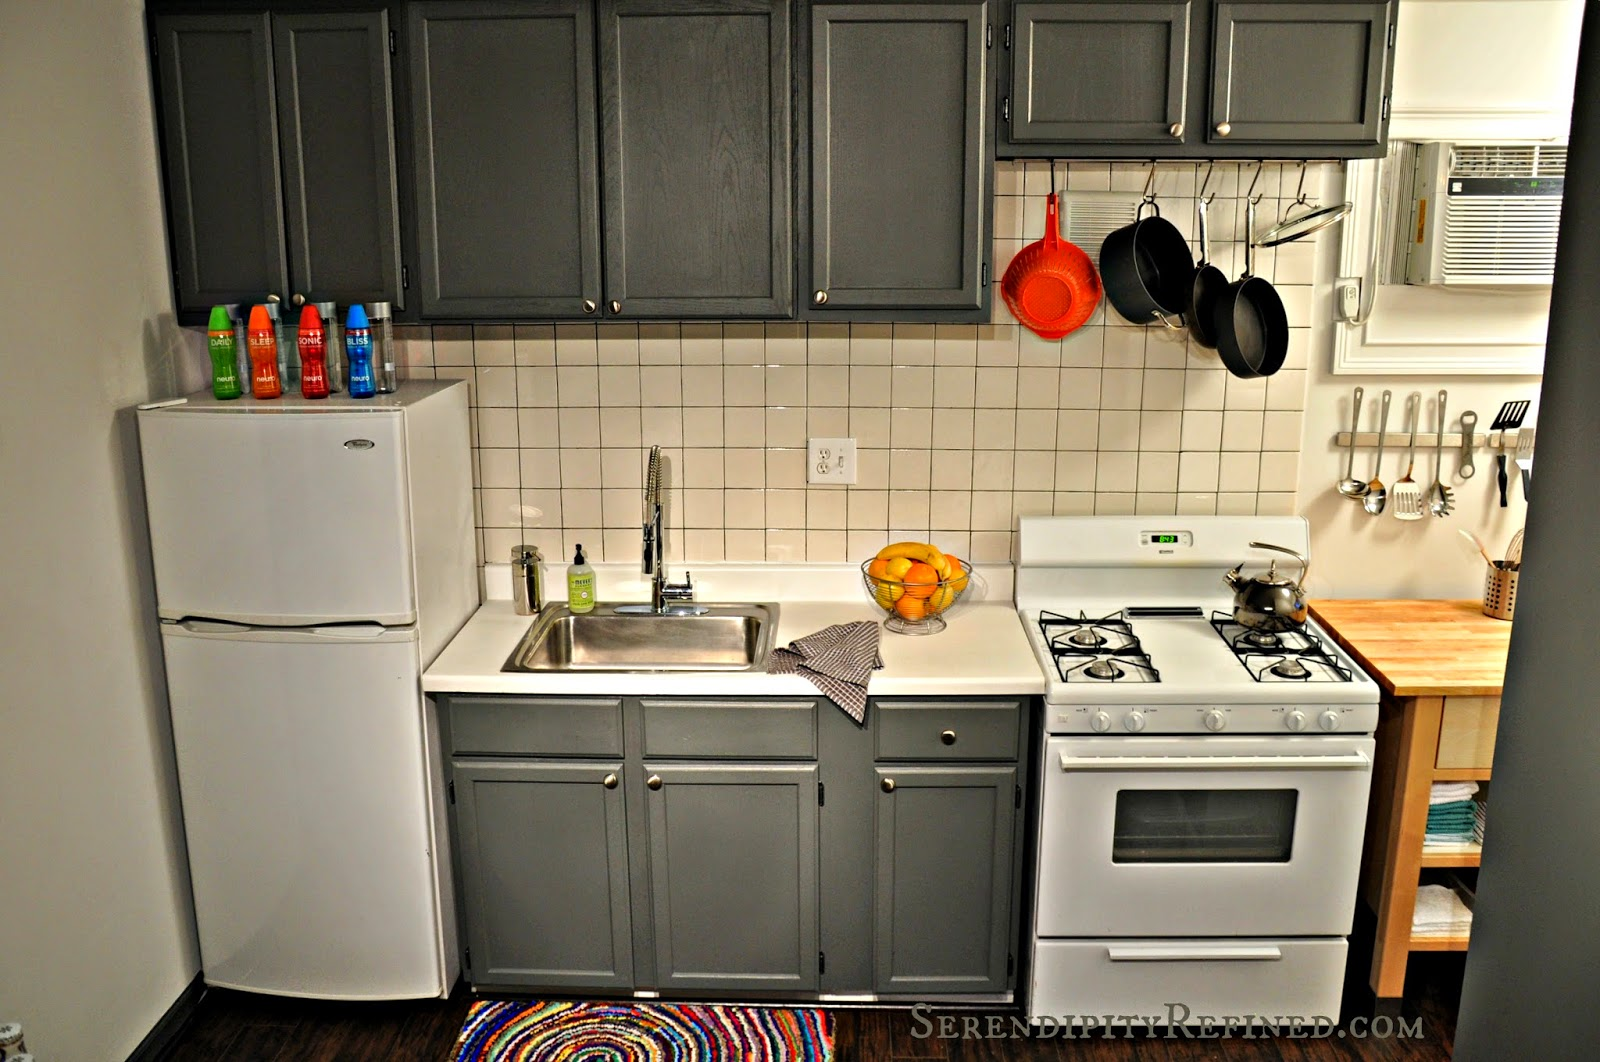 Serendipity Refined Blog: Small Space Kitchen Contemporary ...